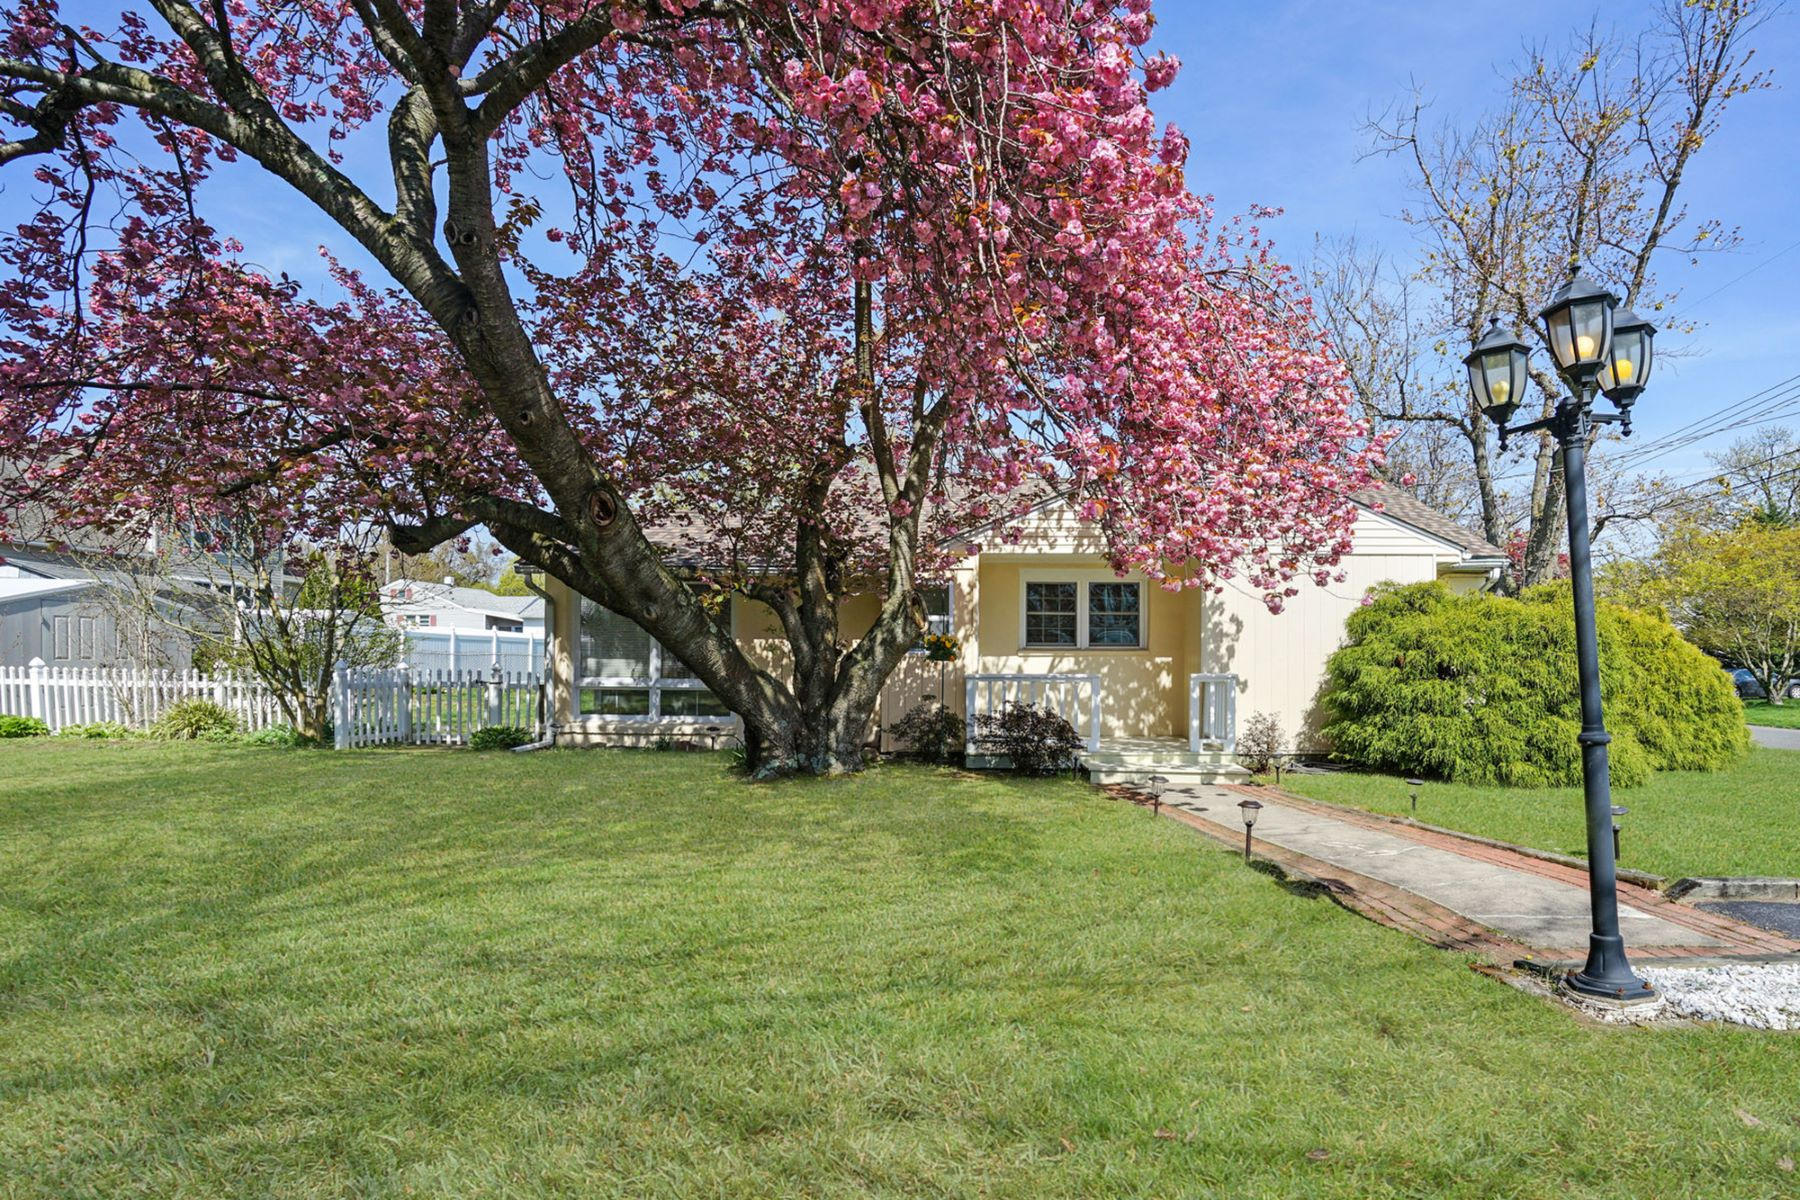 Single Family Homes for Sale at Imperial Park 2907 Grant Street Wall, New Jersey 07719 United States